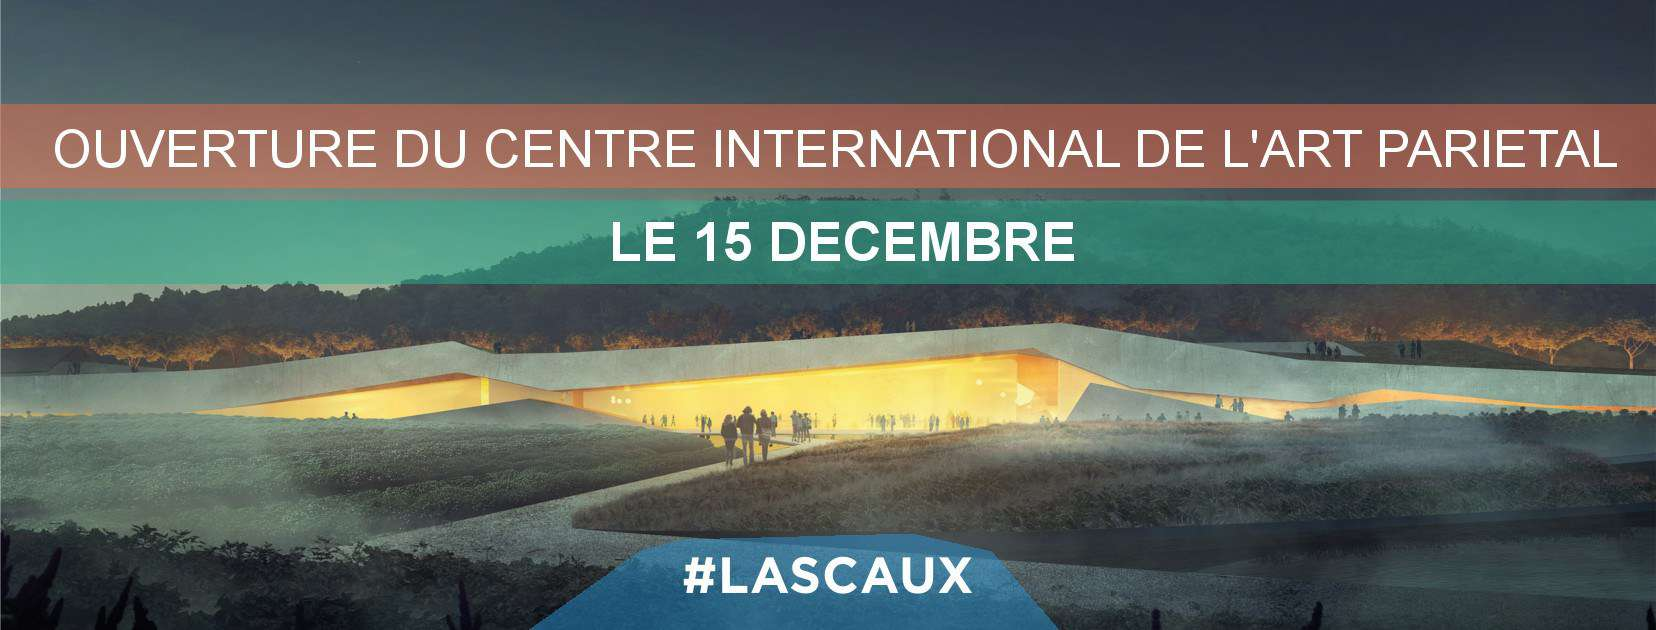 Lascaux 4 opens on 15 December 2016